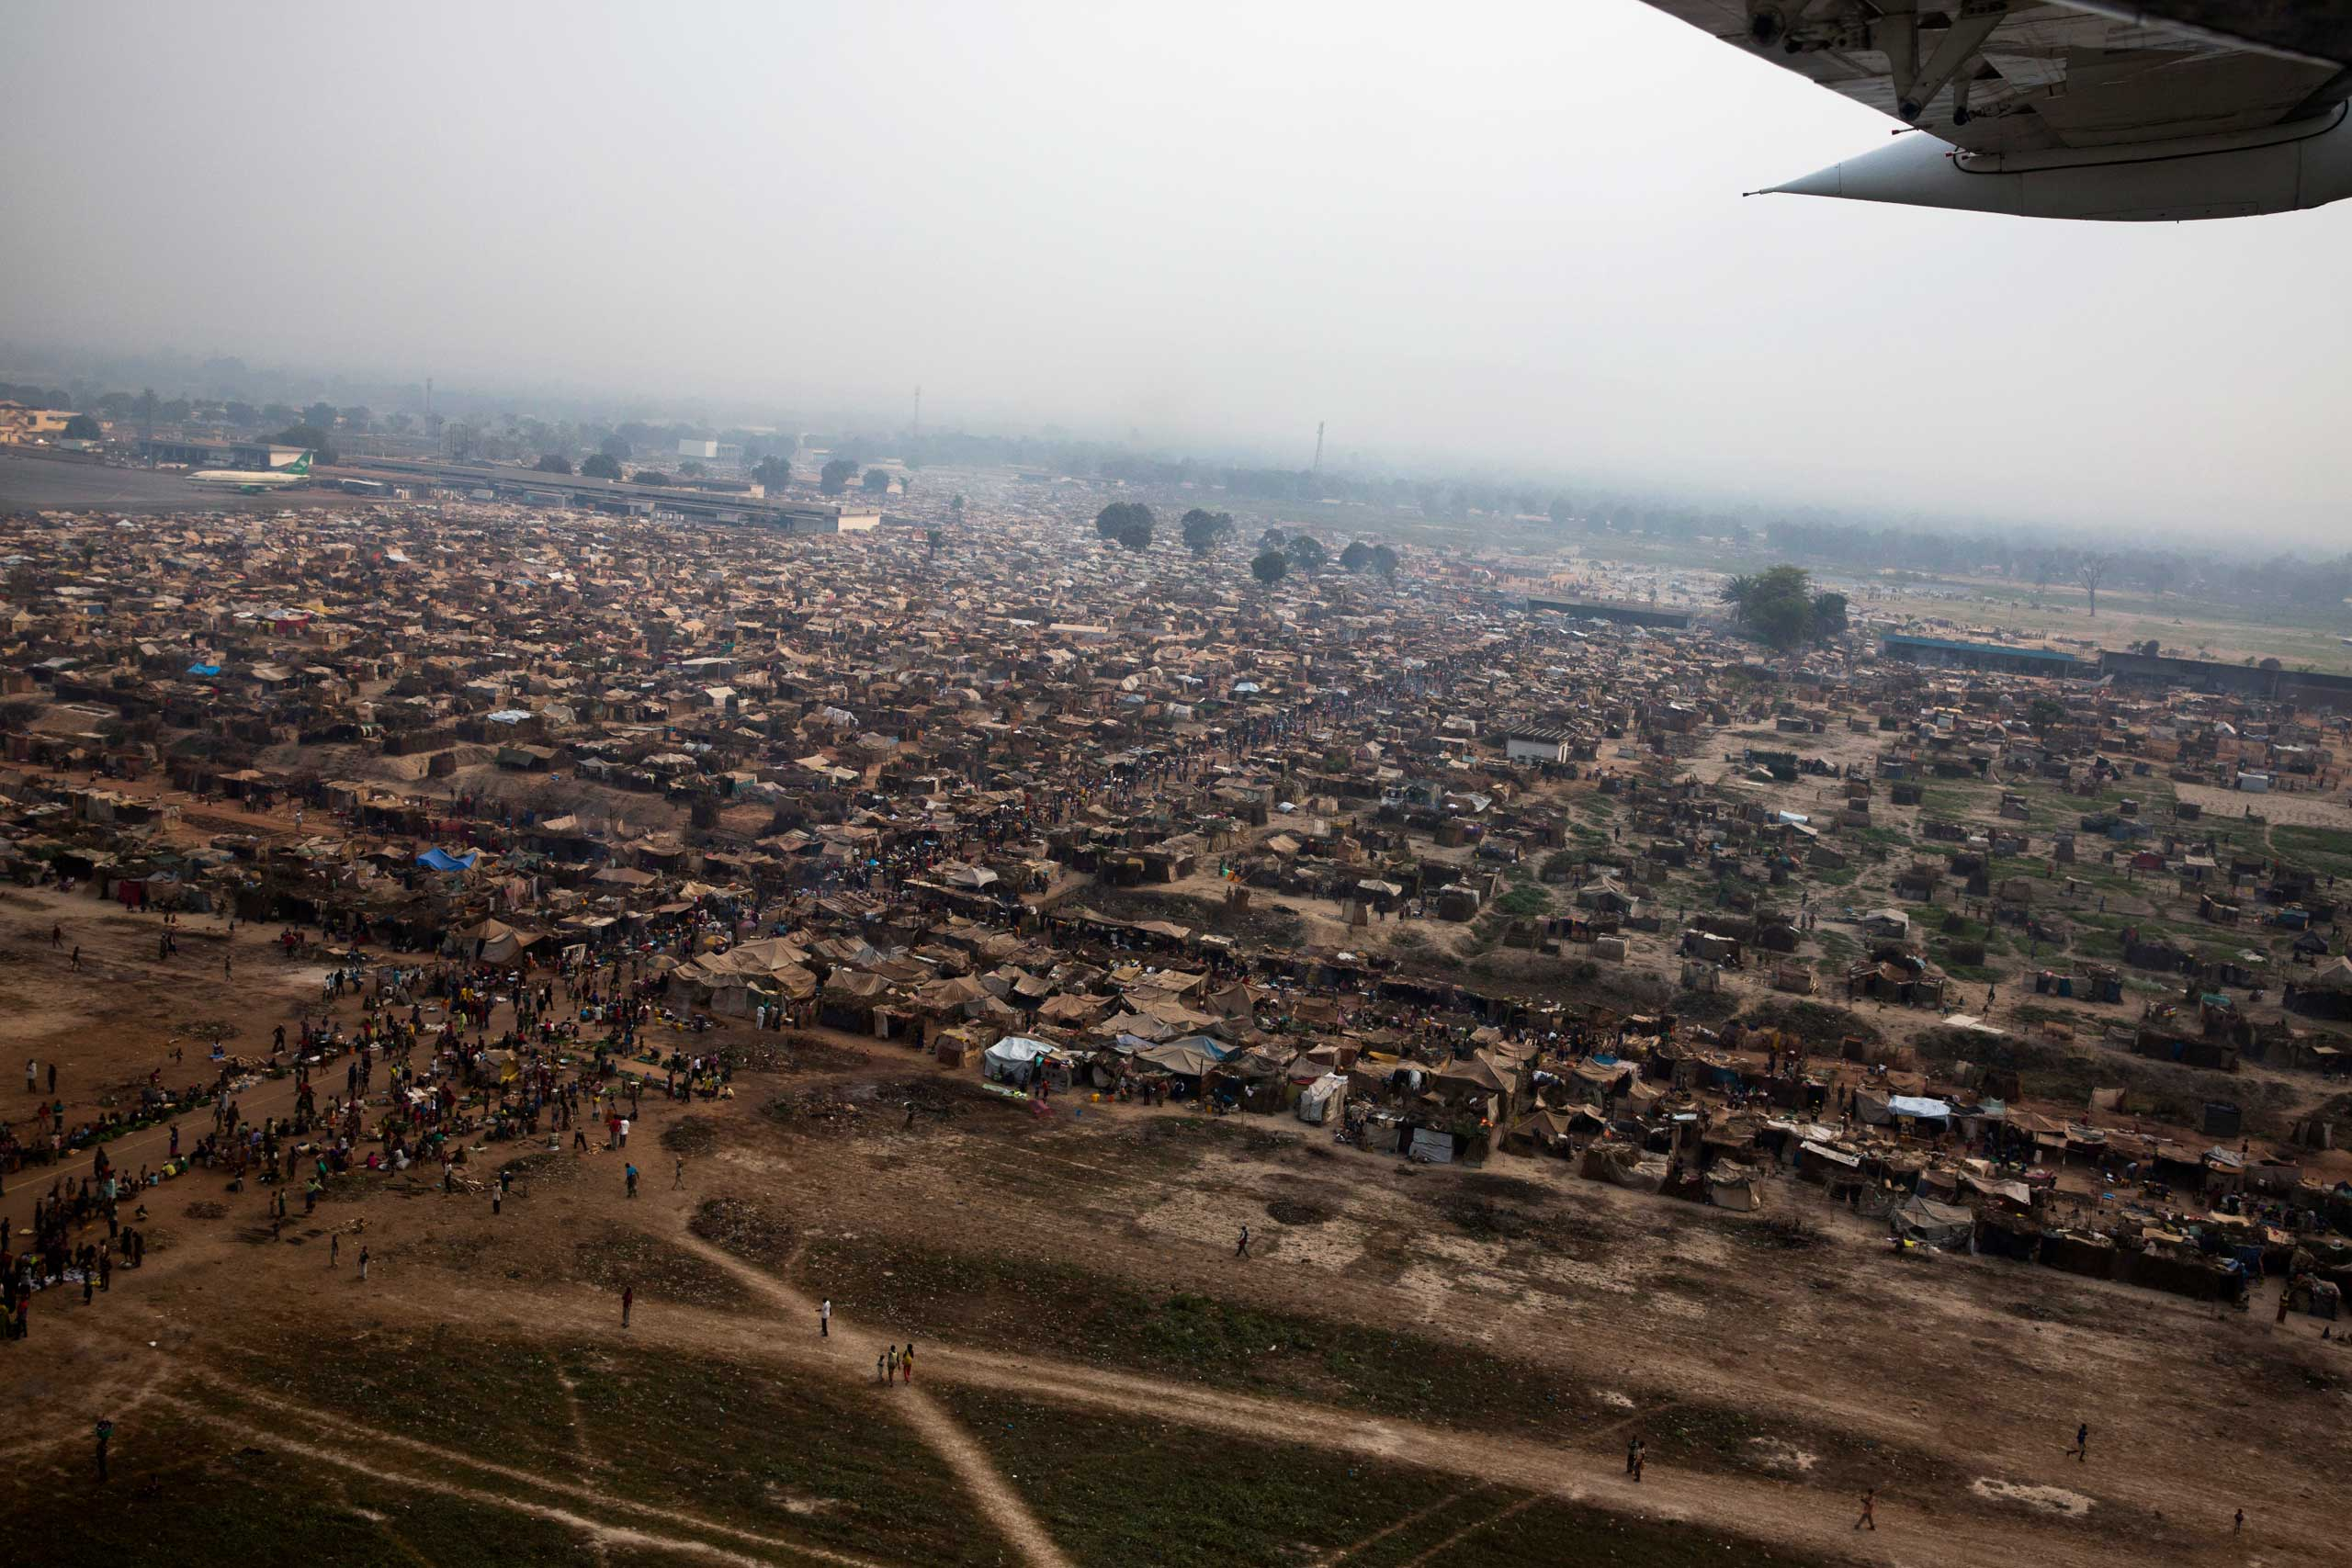 An overhead scene of the makeshift camp near Bangui's main airport that would grow to more than 100,000 people at its peak. They had fled fighting between Séléka and anti-balaka, and felt more secure with French forces at the entrance. Bangui, Central African Republic. Jan. 29, 2014.